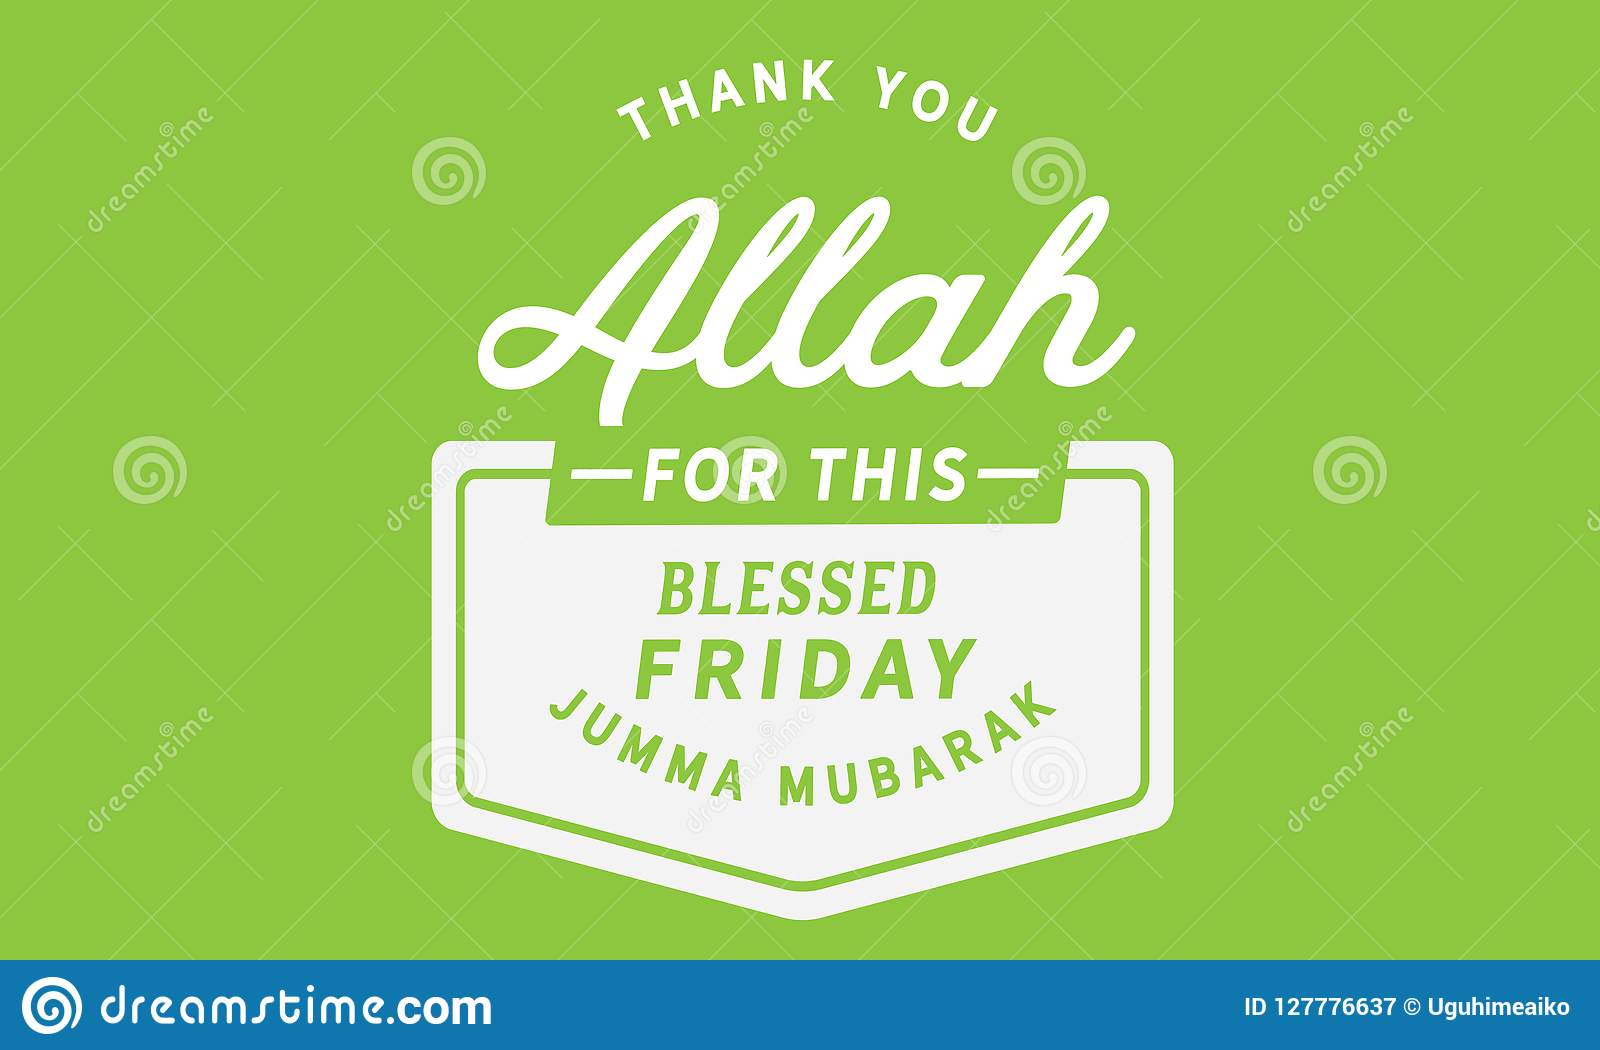 Thank You Allah For This Blessed Friday Jumma Mubarak Stock